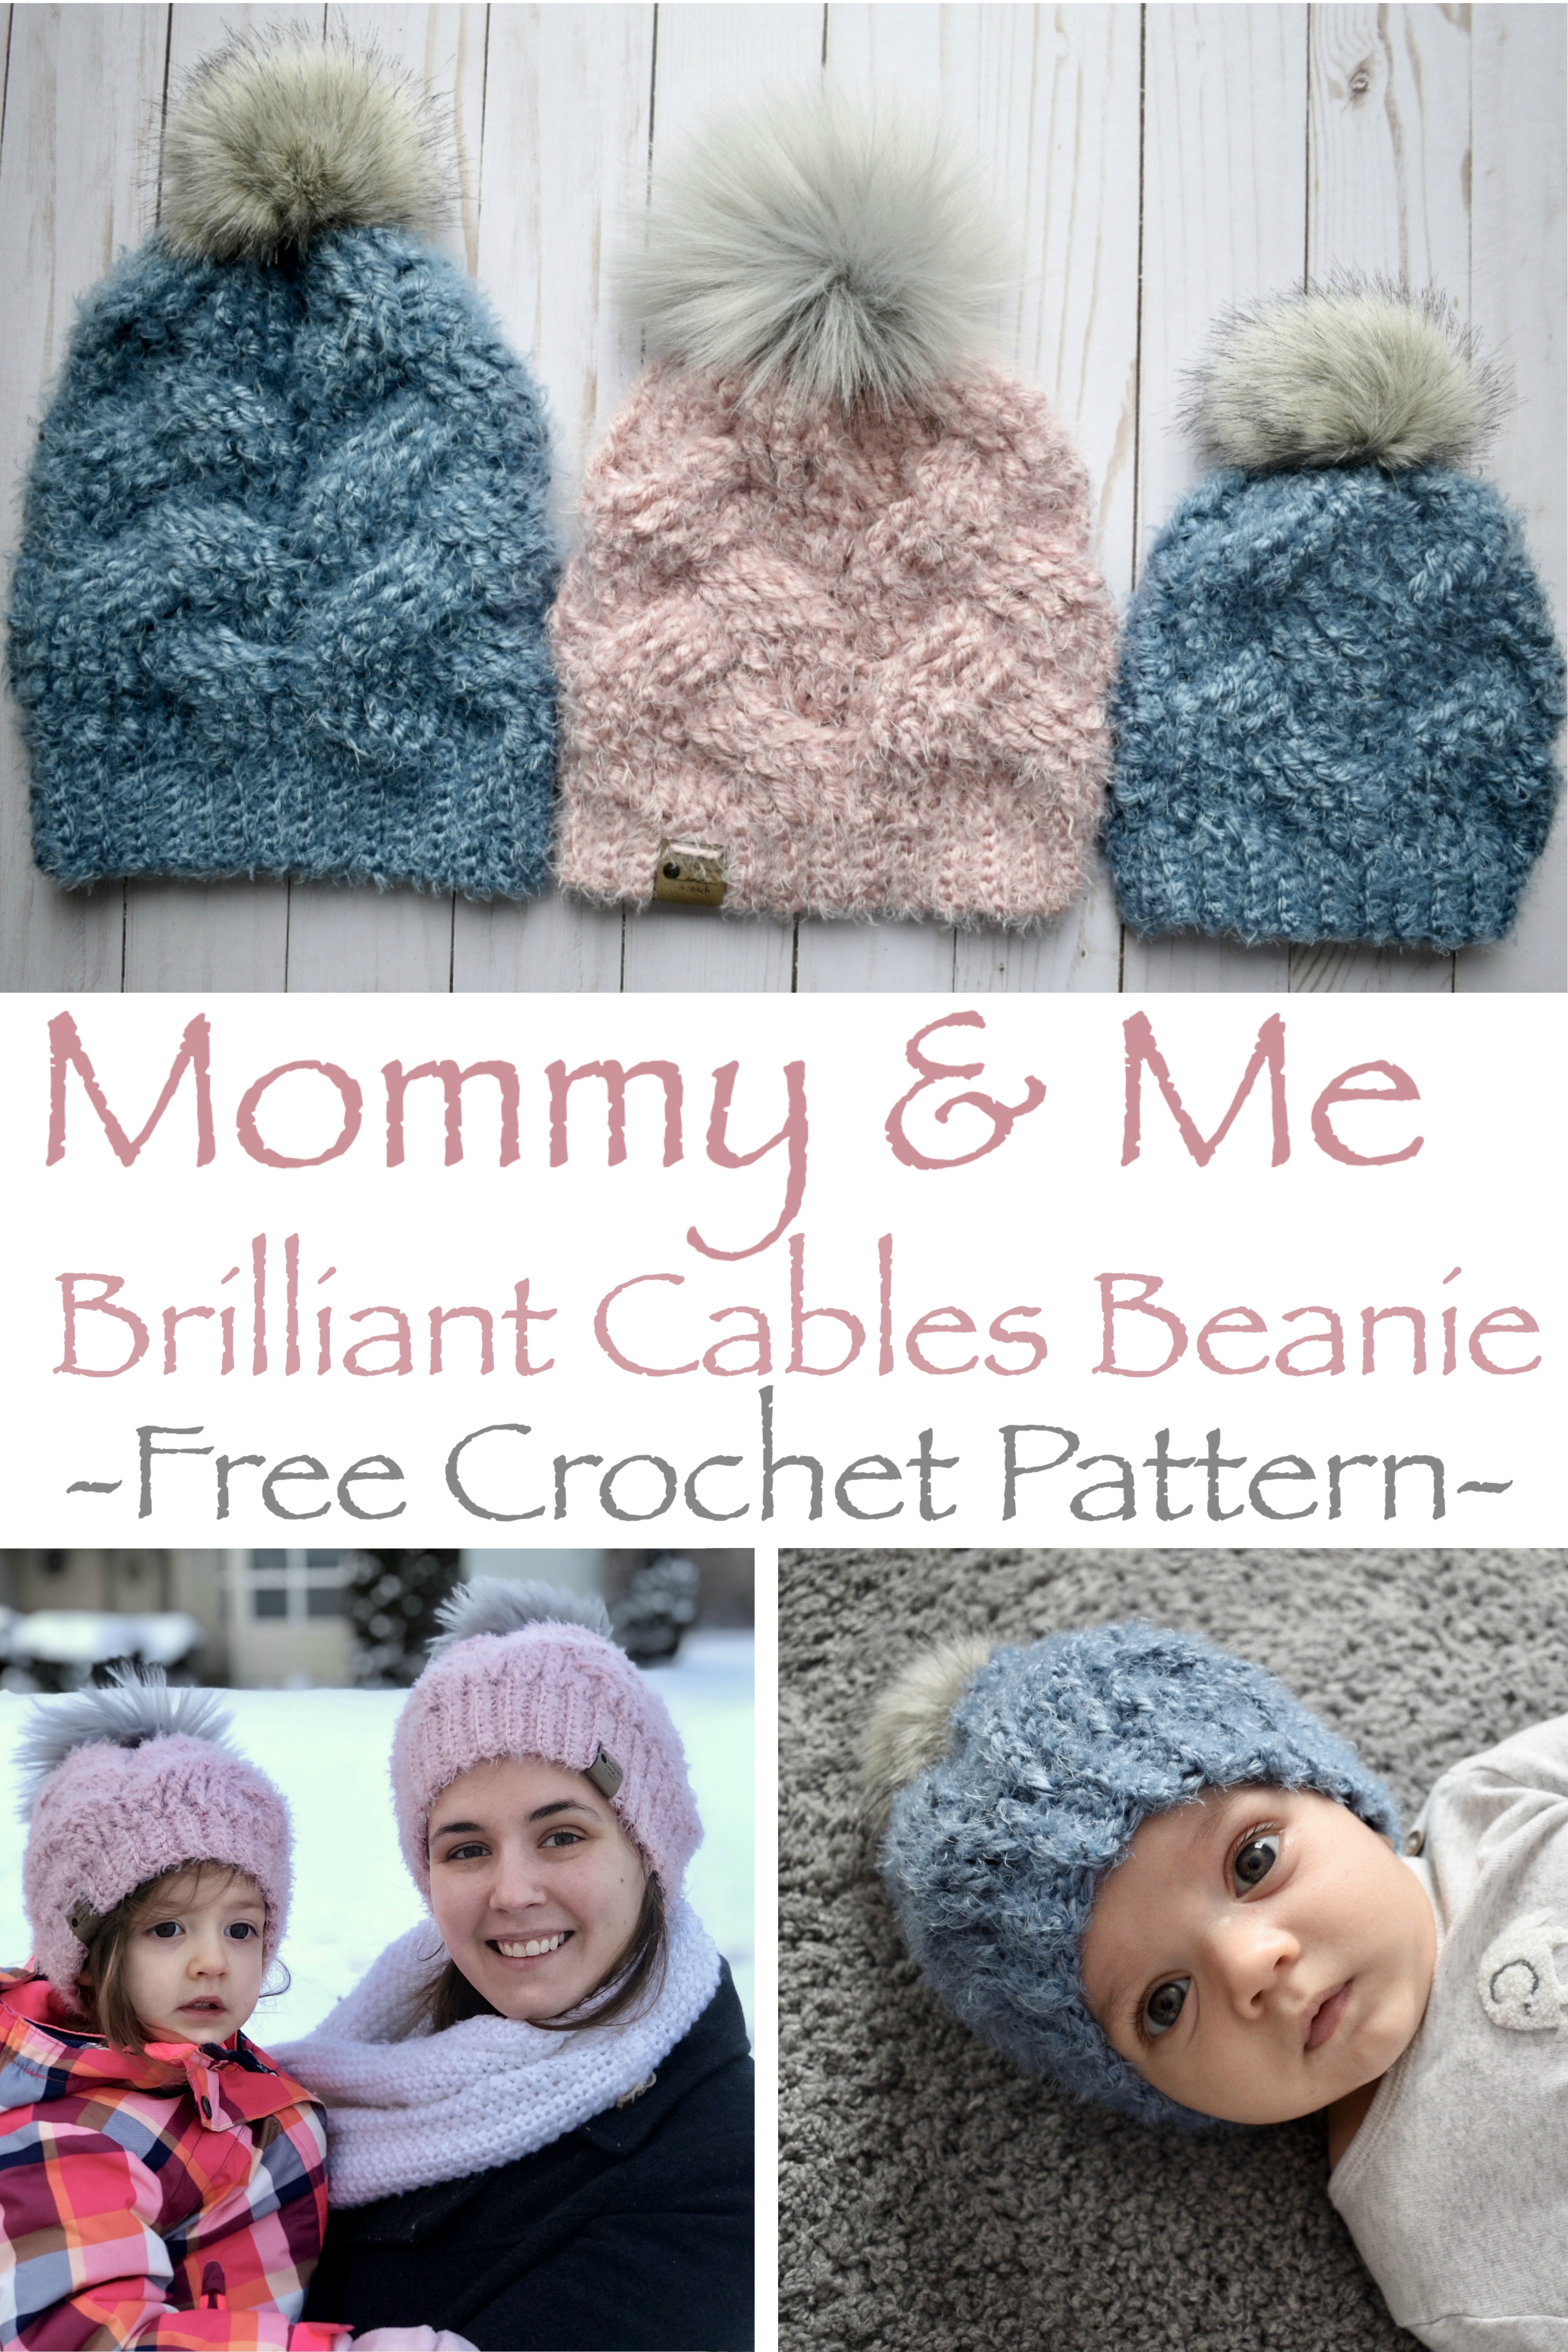 Mommy & Me Brilliant Cables Beanie